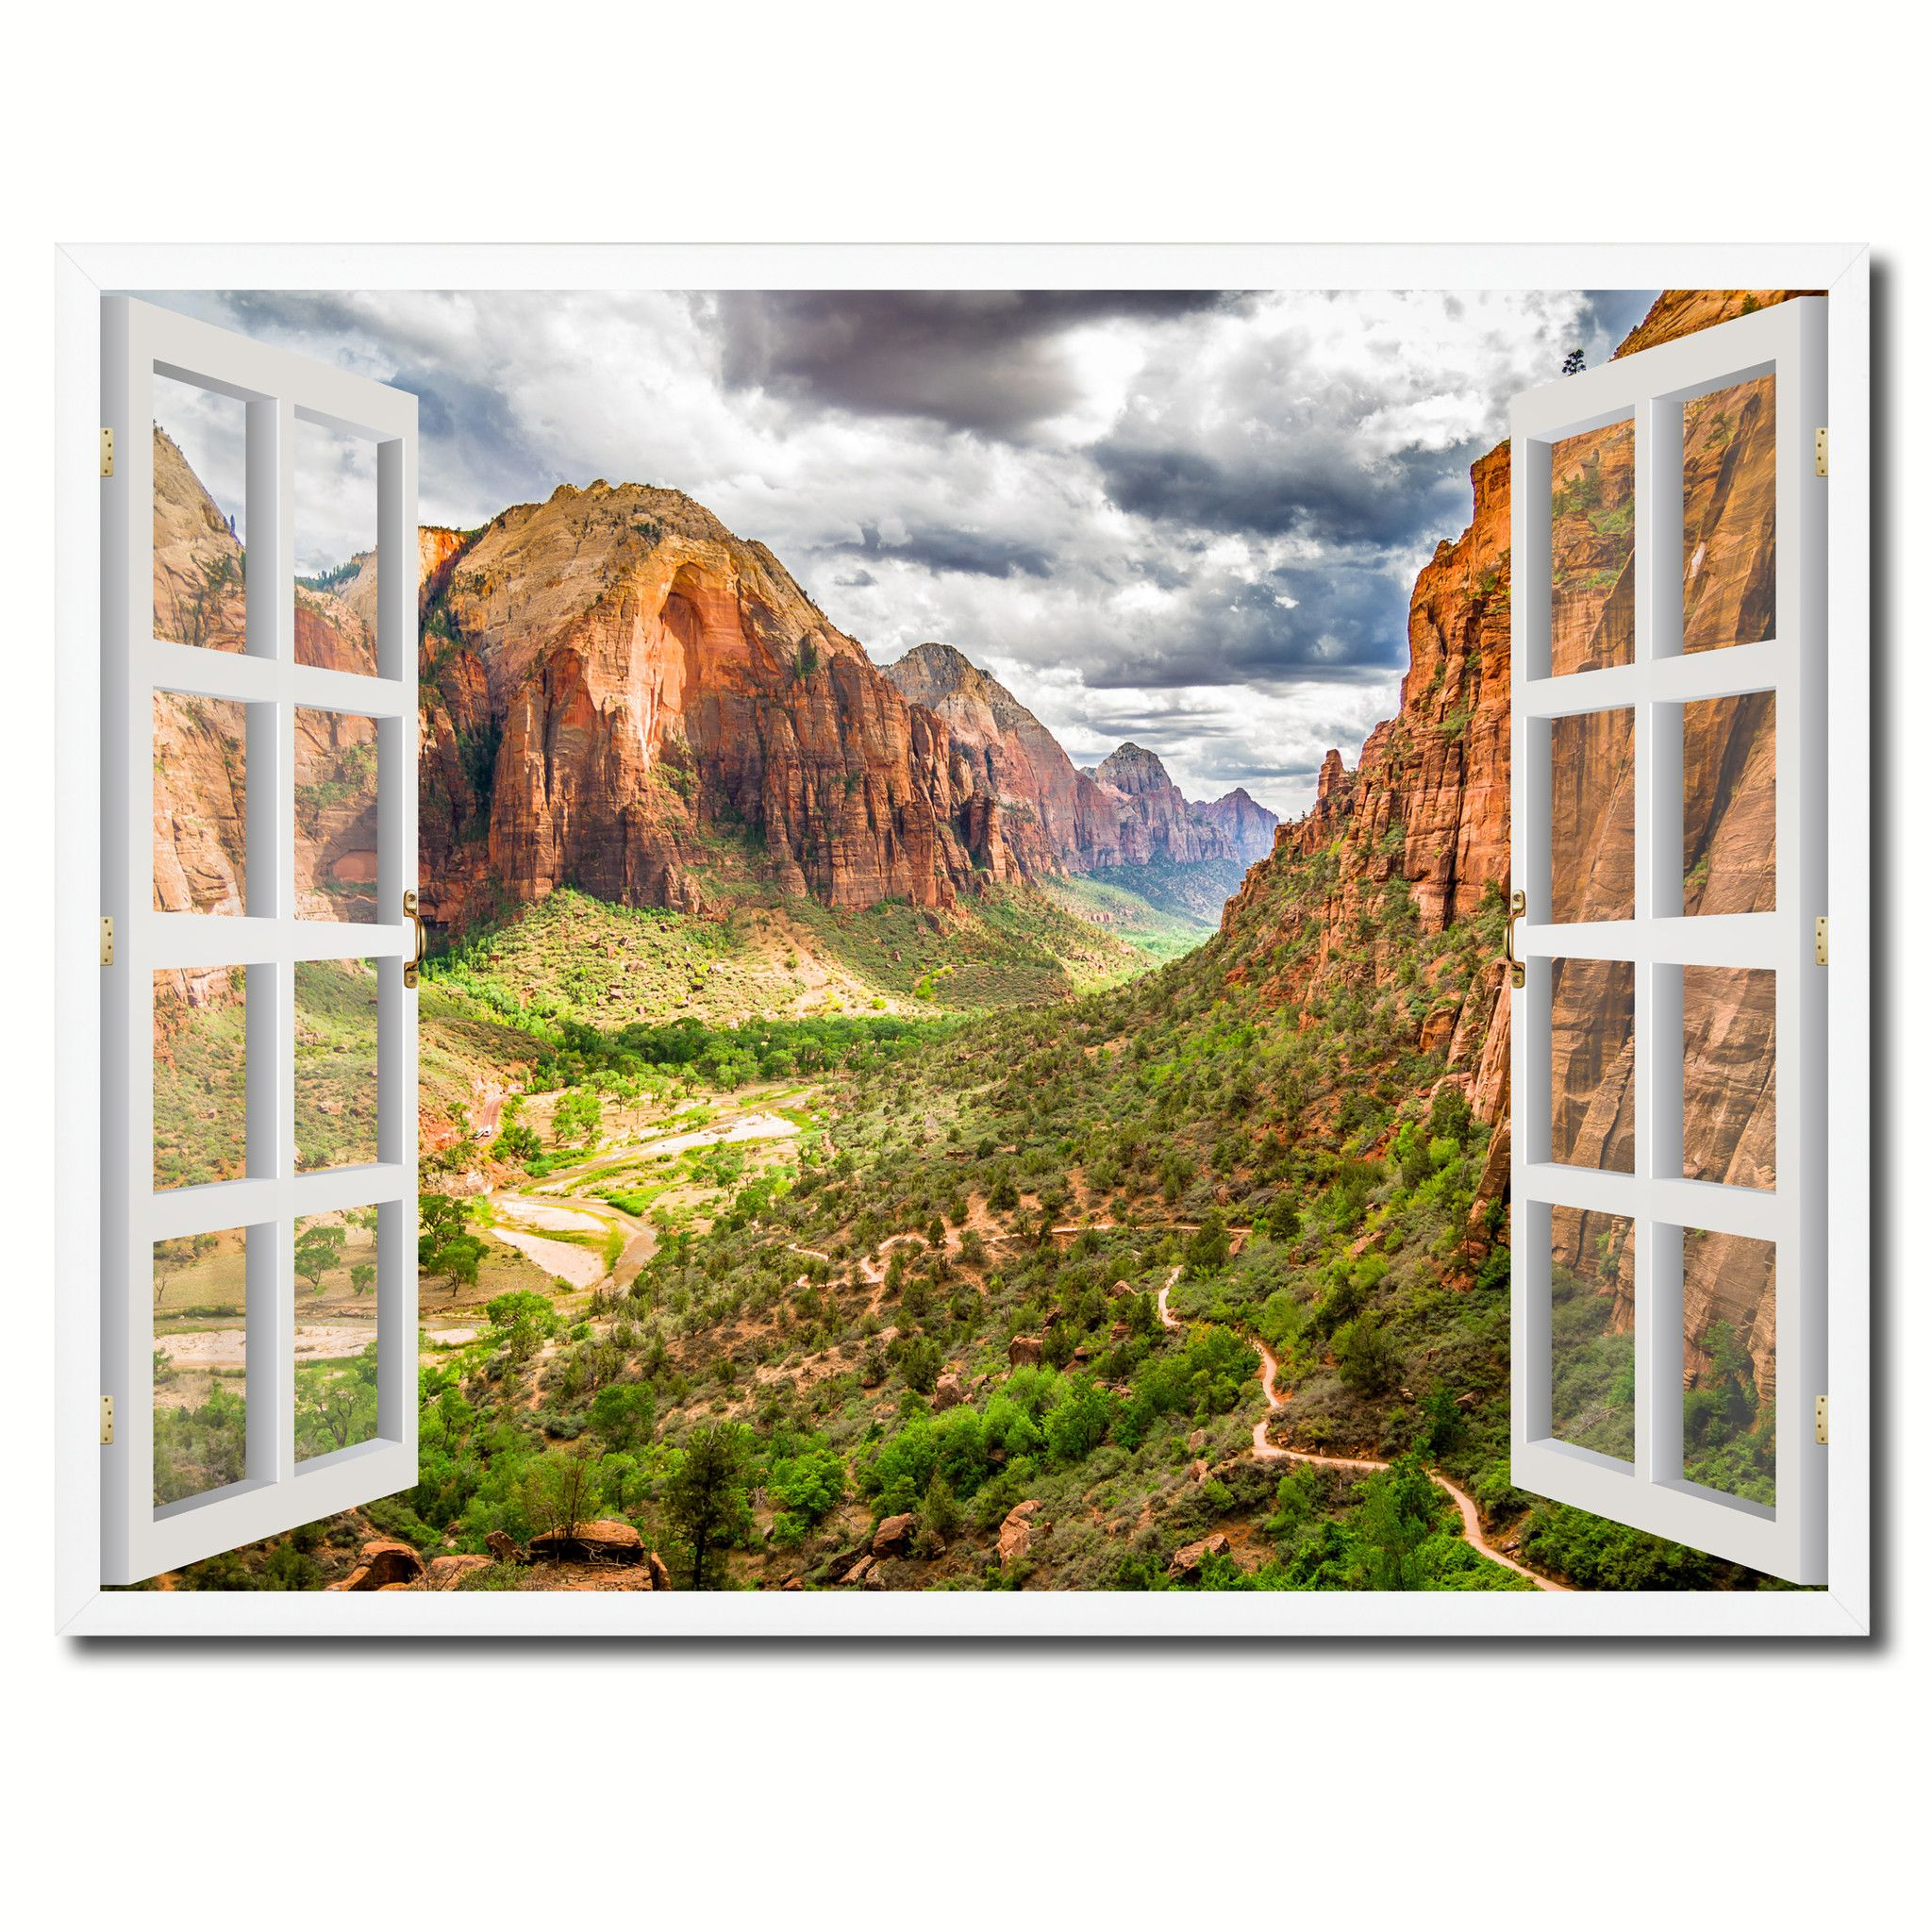 landscape zion national park picture 3d french window canvas print landscape zion national park picture 3d french window canvas print with frame home decor wall art collection